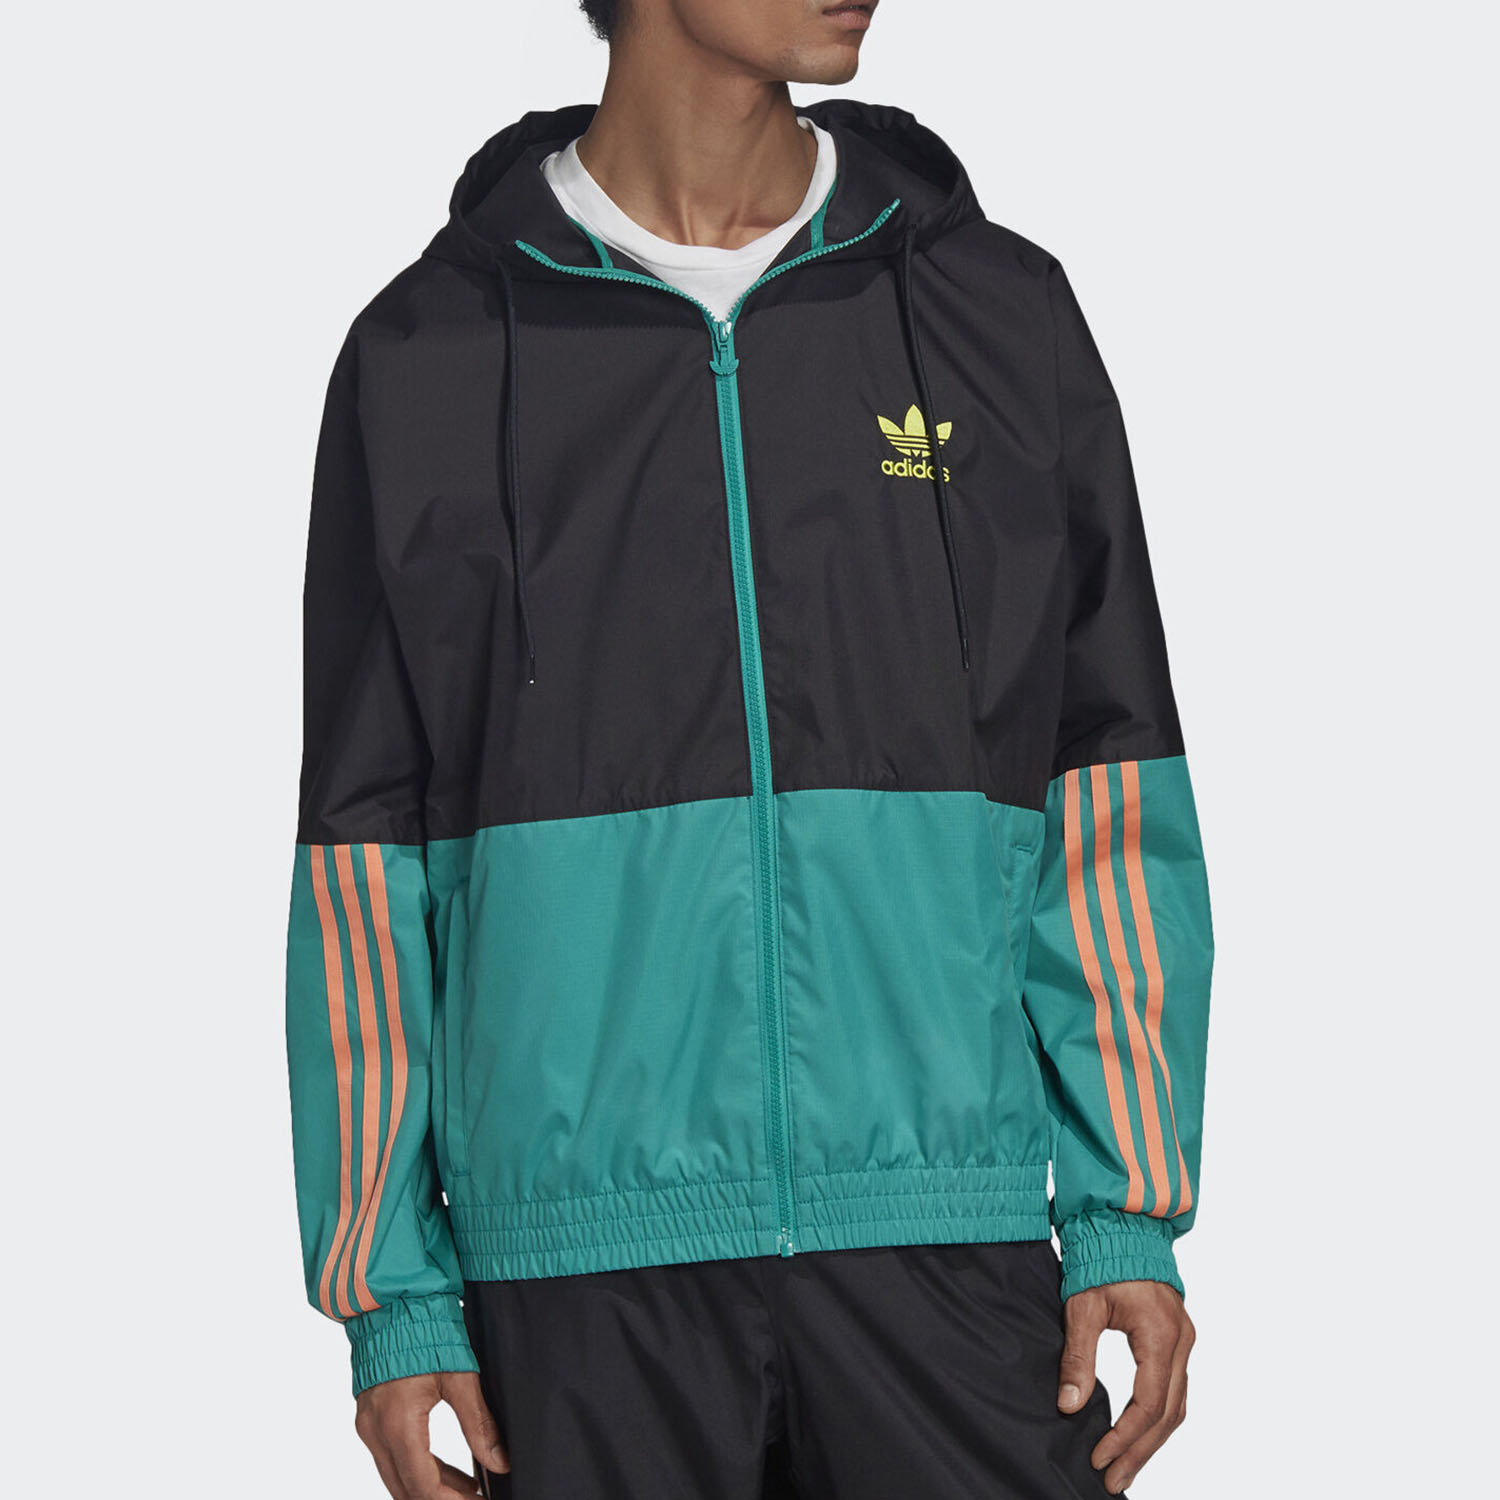 Adidas Original Windbreaker GK5923 Hoody Retro Jacket